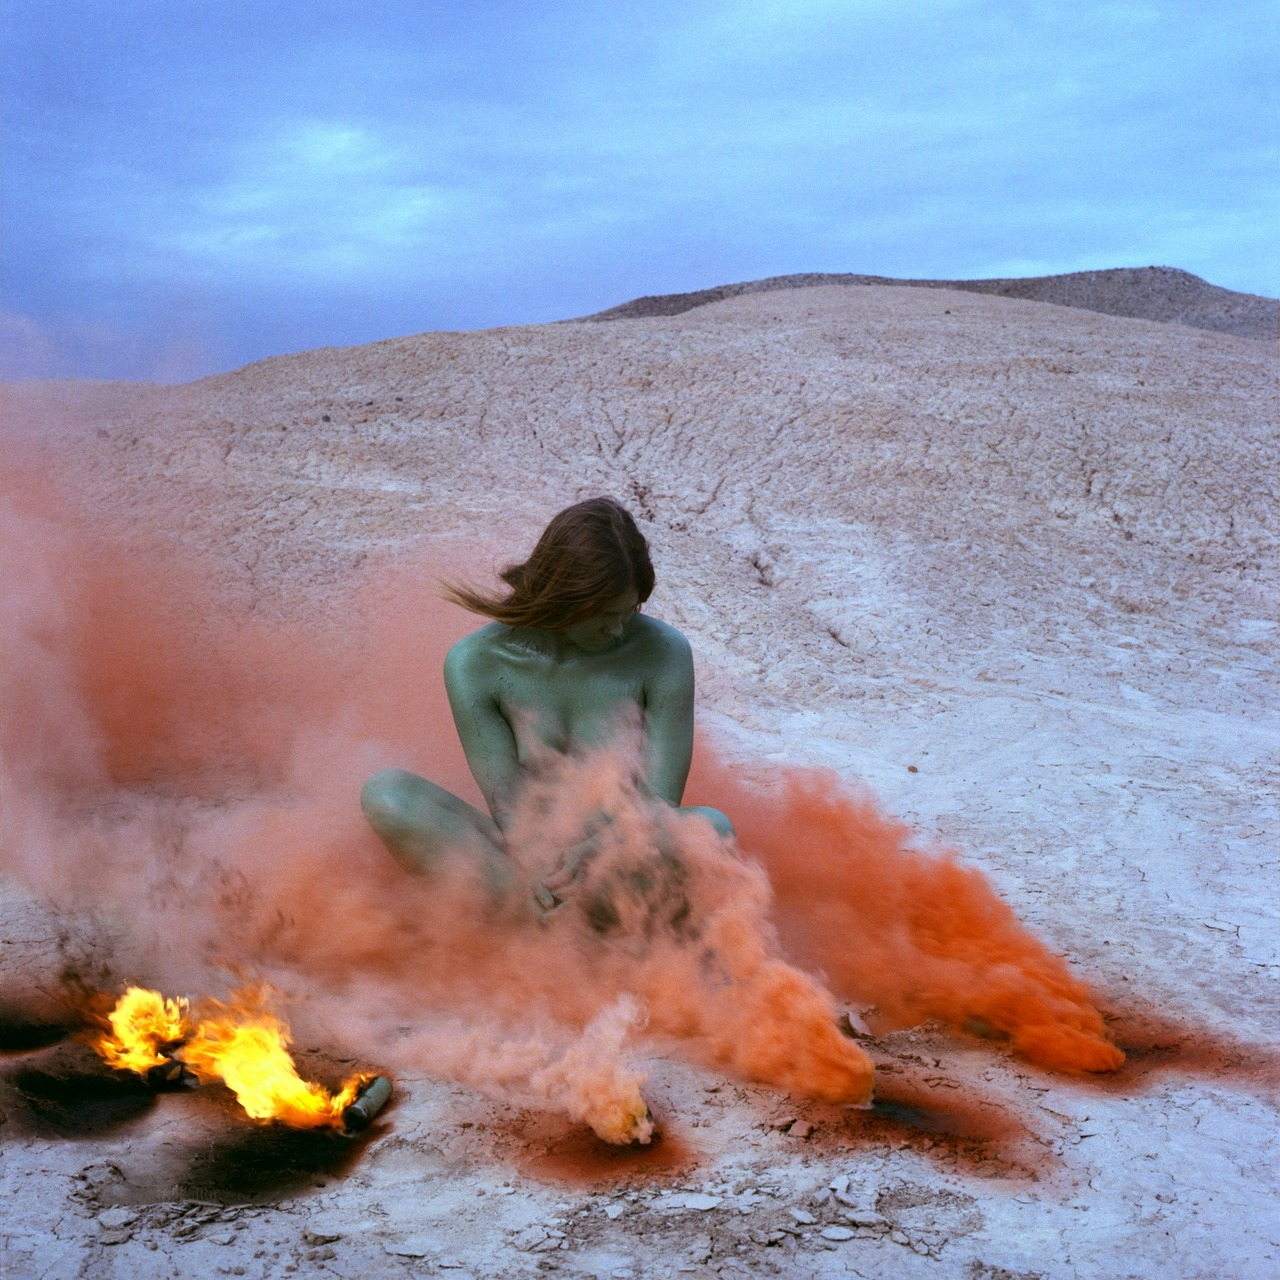 Judy Chicago, Immolation IV from the series Women and Smoke, 1972—Performed with Faith Wilding in the California desert [from the exhibition Ends of the Earth, on view at Haus der Kunst, Munich]